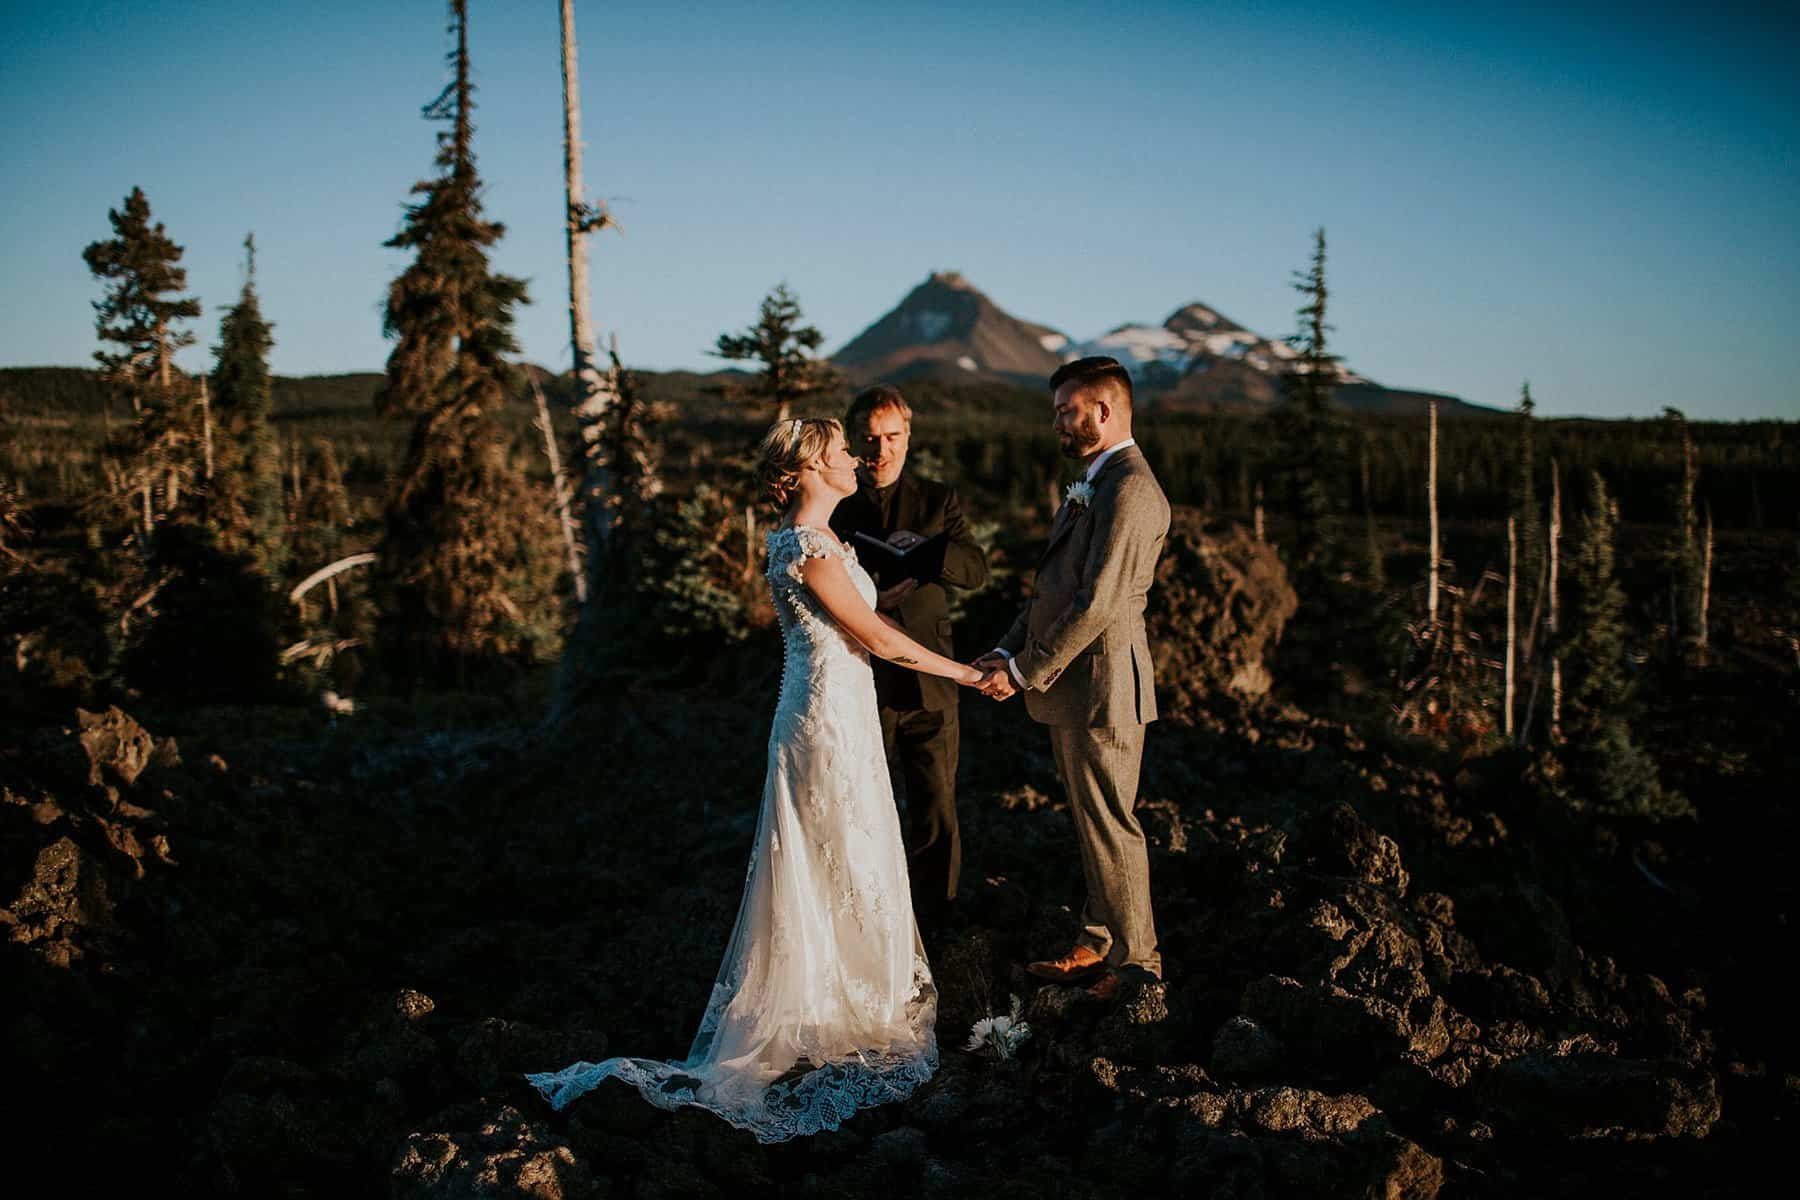 bend-central-oregon-waterfall-adventure-wedding-elopement-025